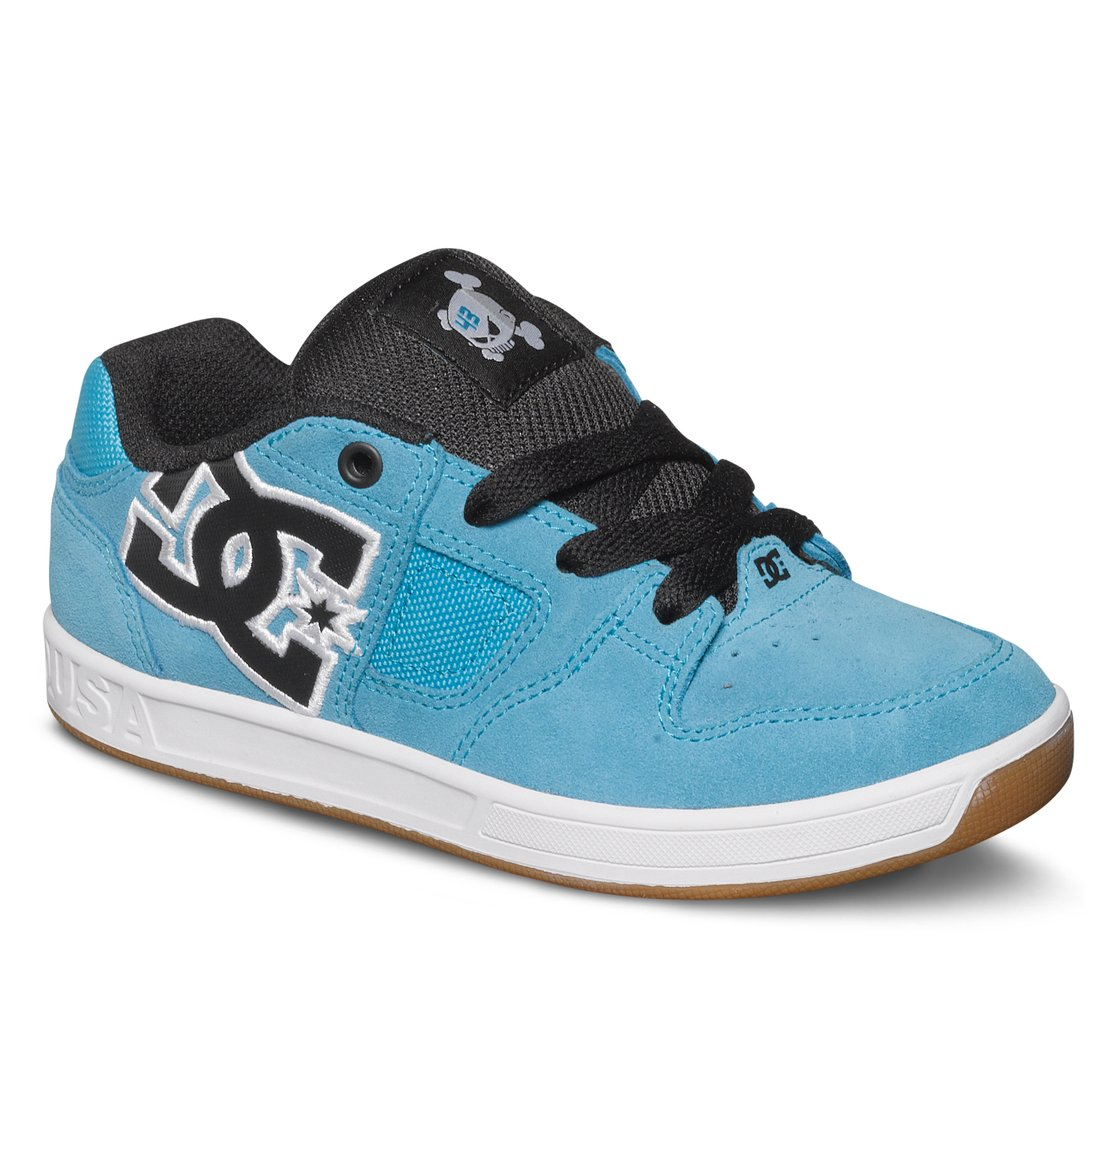 sceptor ken block adbs100134 dc shoes. Black Bedroom Furniture Sets. Home Design Ideas